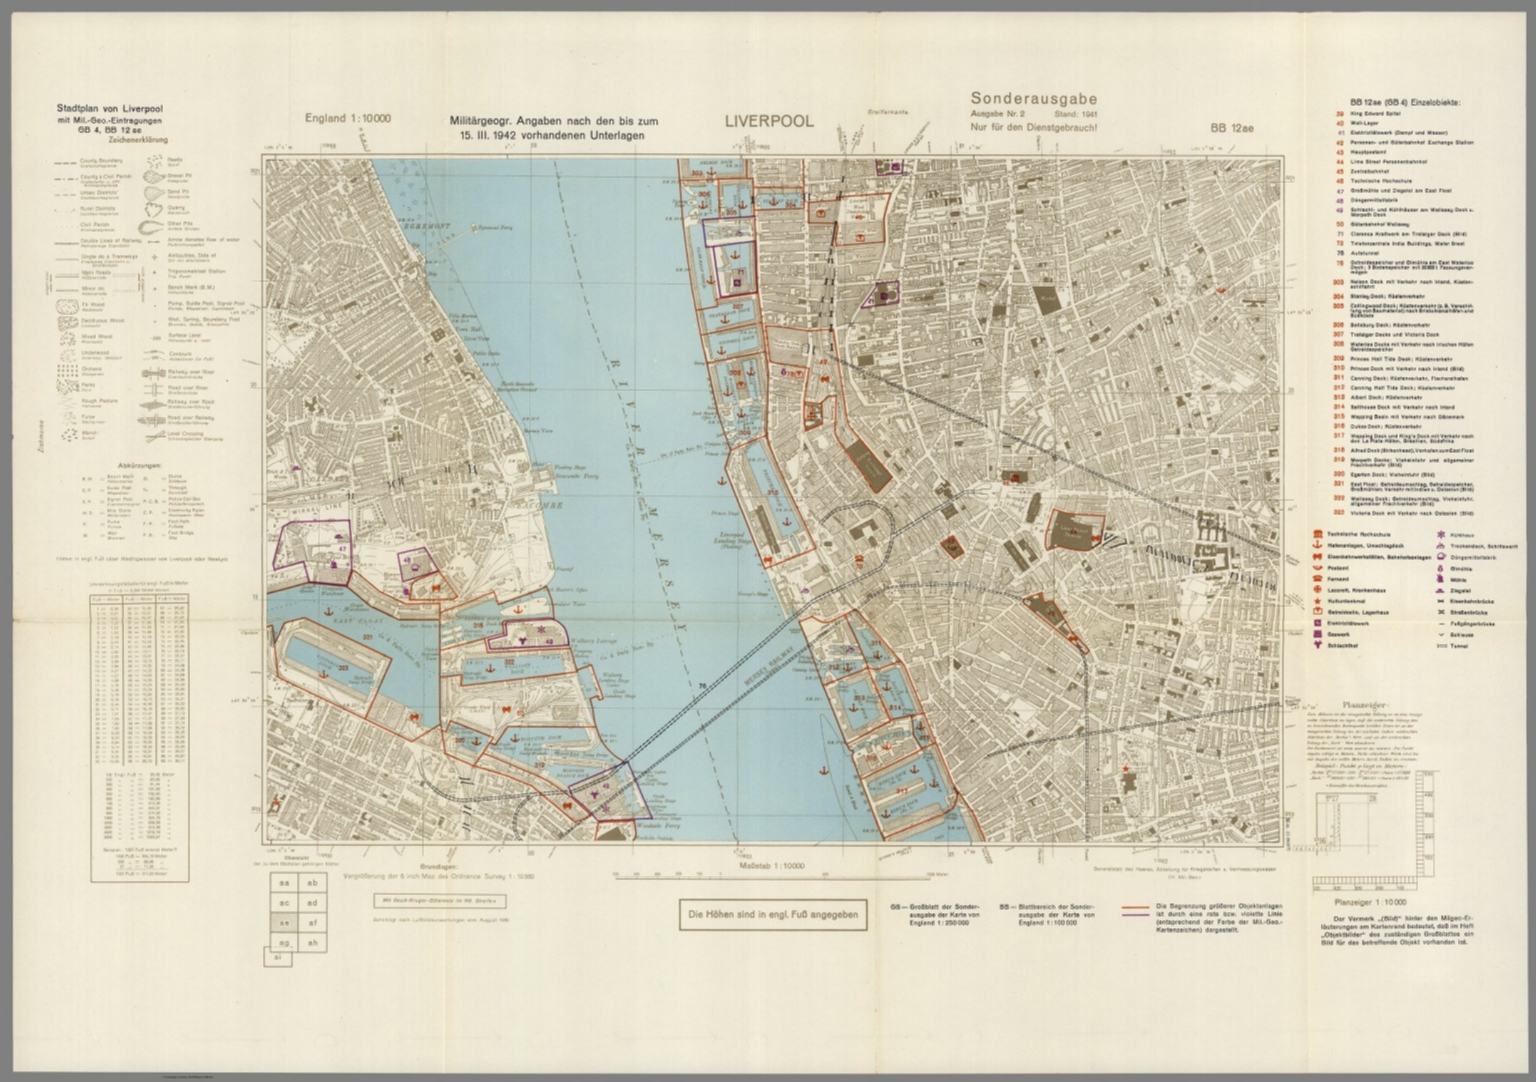 Street Map of Liverpool, England with Military-Geographic ... on marylebone map, liverpool england central map, borough map, paddington station map, russell square map, bangkok airport map, leadenhall market map, covent garden map, grosvenor square map, camden town map, east india map, west end map, tower hill map,